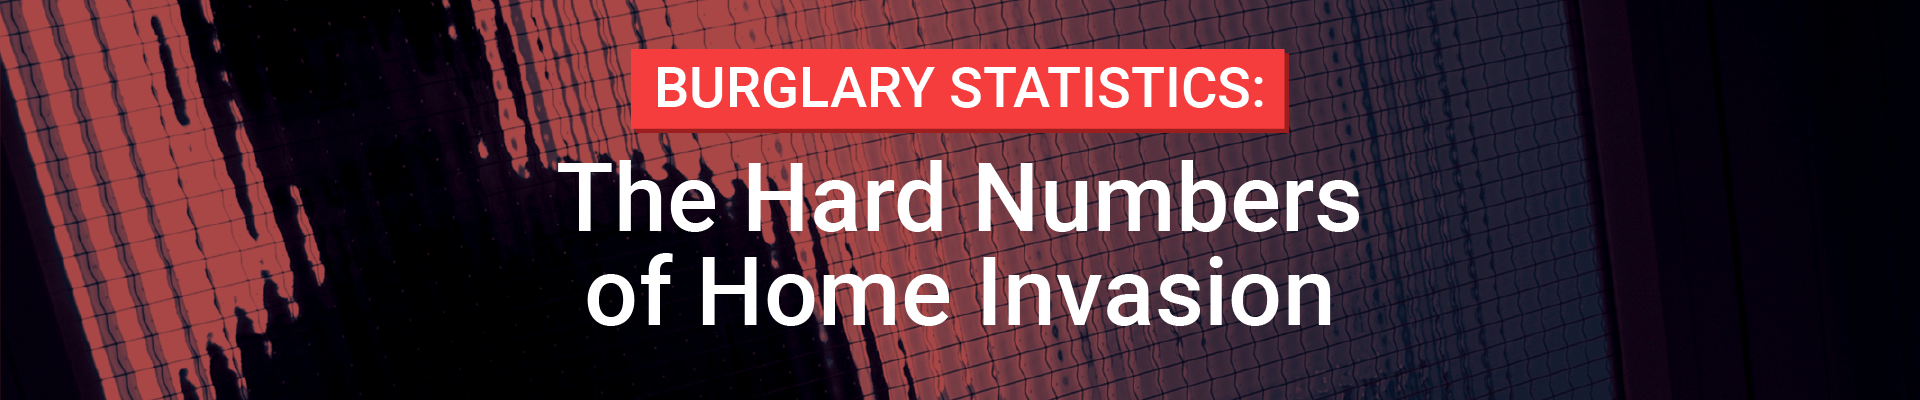 Burglary Statistics: The Hard Numbers | National Council For